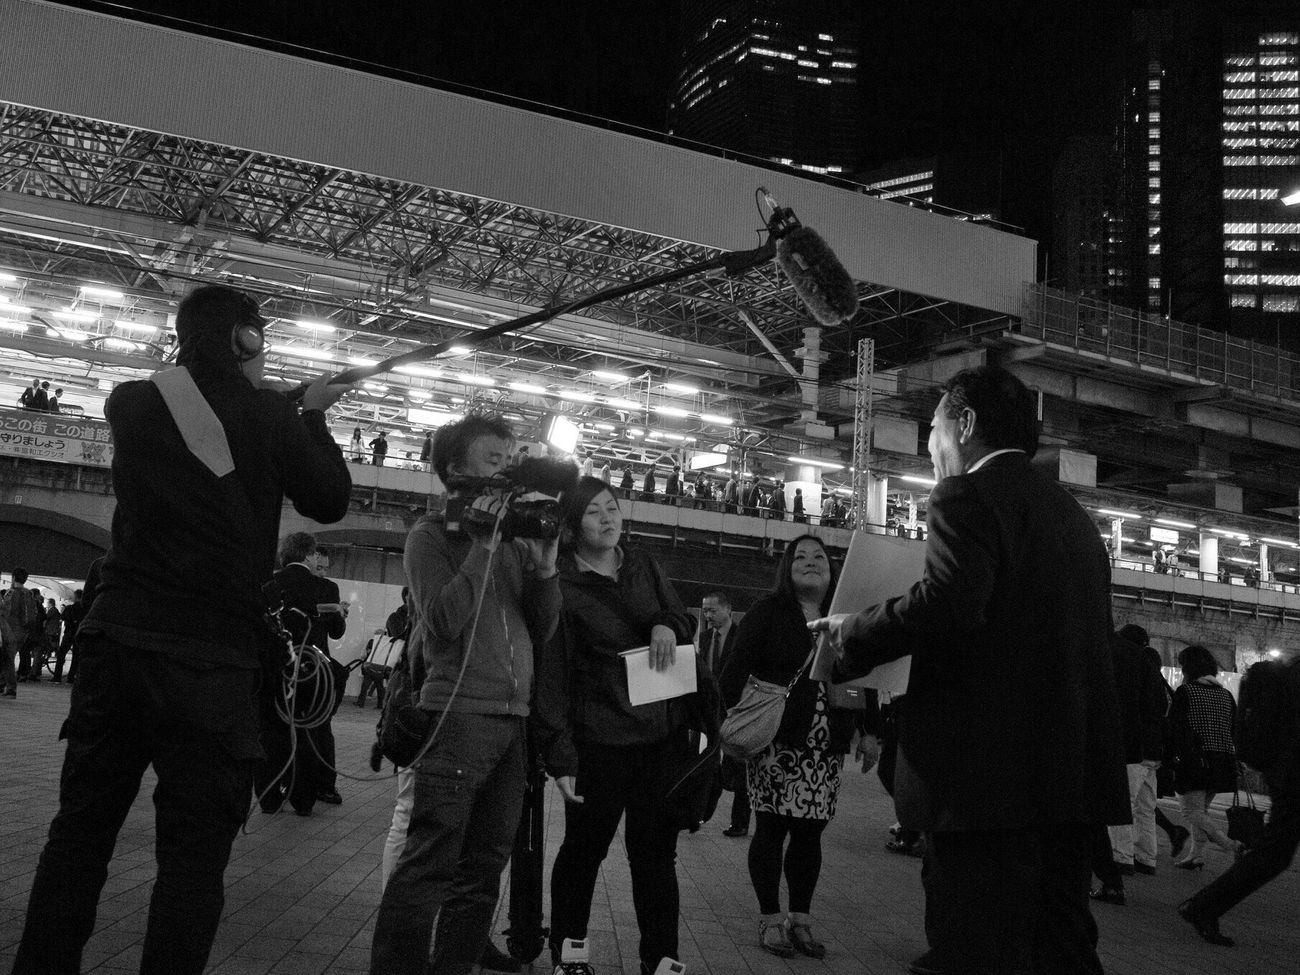 Night People Interview Television CityWalk Snapshot On The Road Streetphotography_bw B&w Street Photography Train Station Businessman Nightphotography City Life at Shinbashi Shimbashi 新橋 , Tokyo Japan